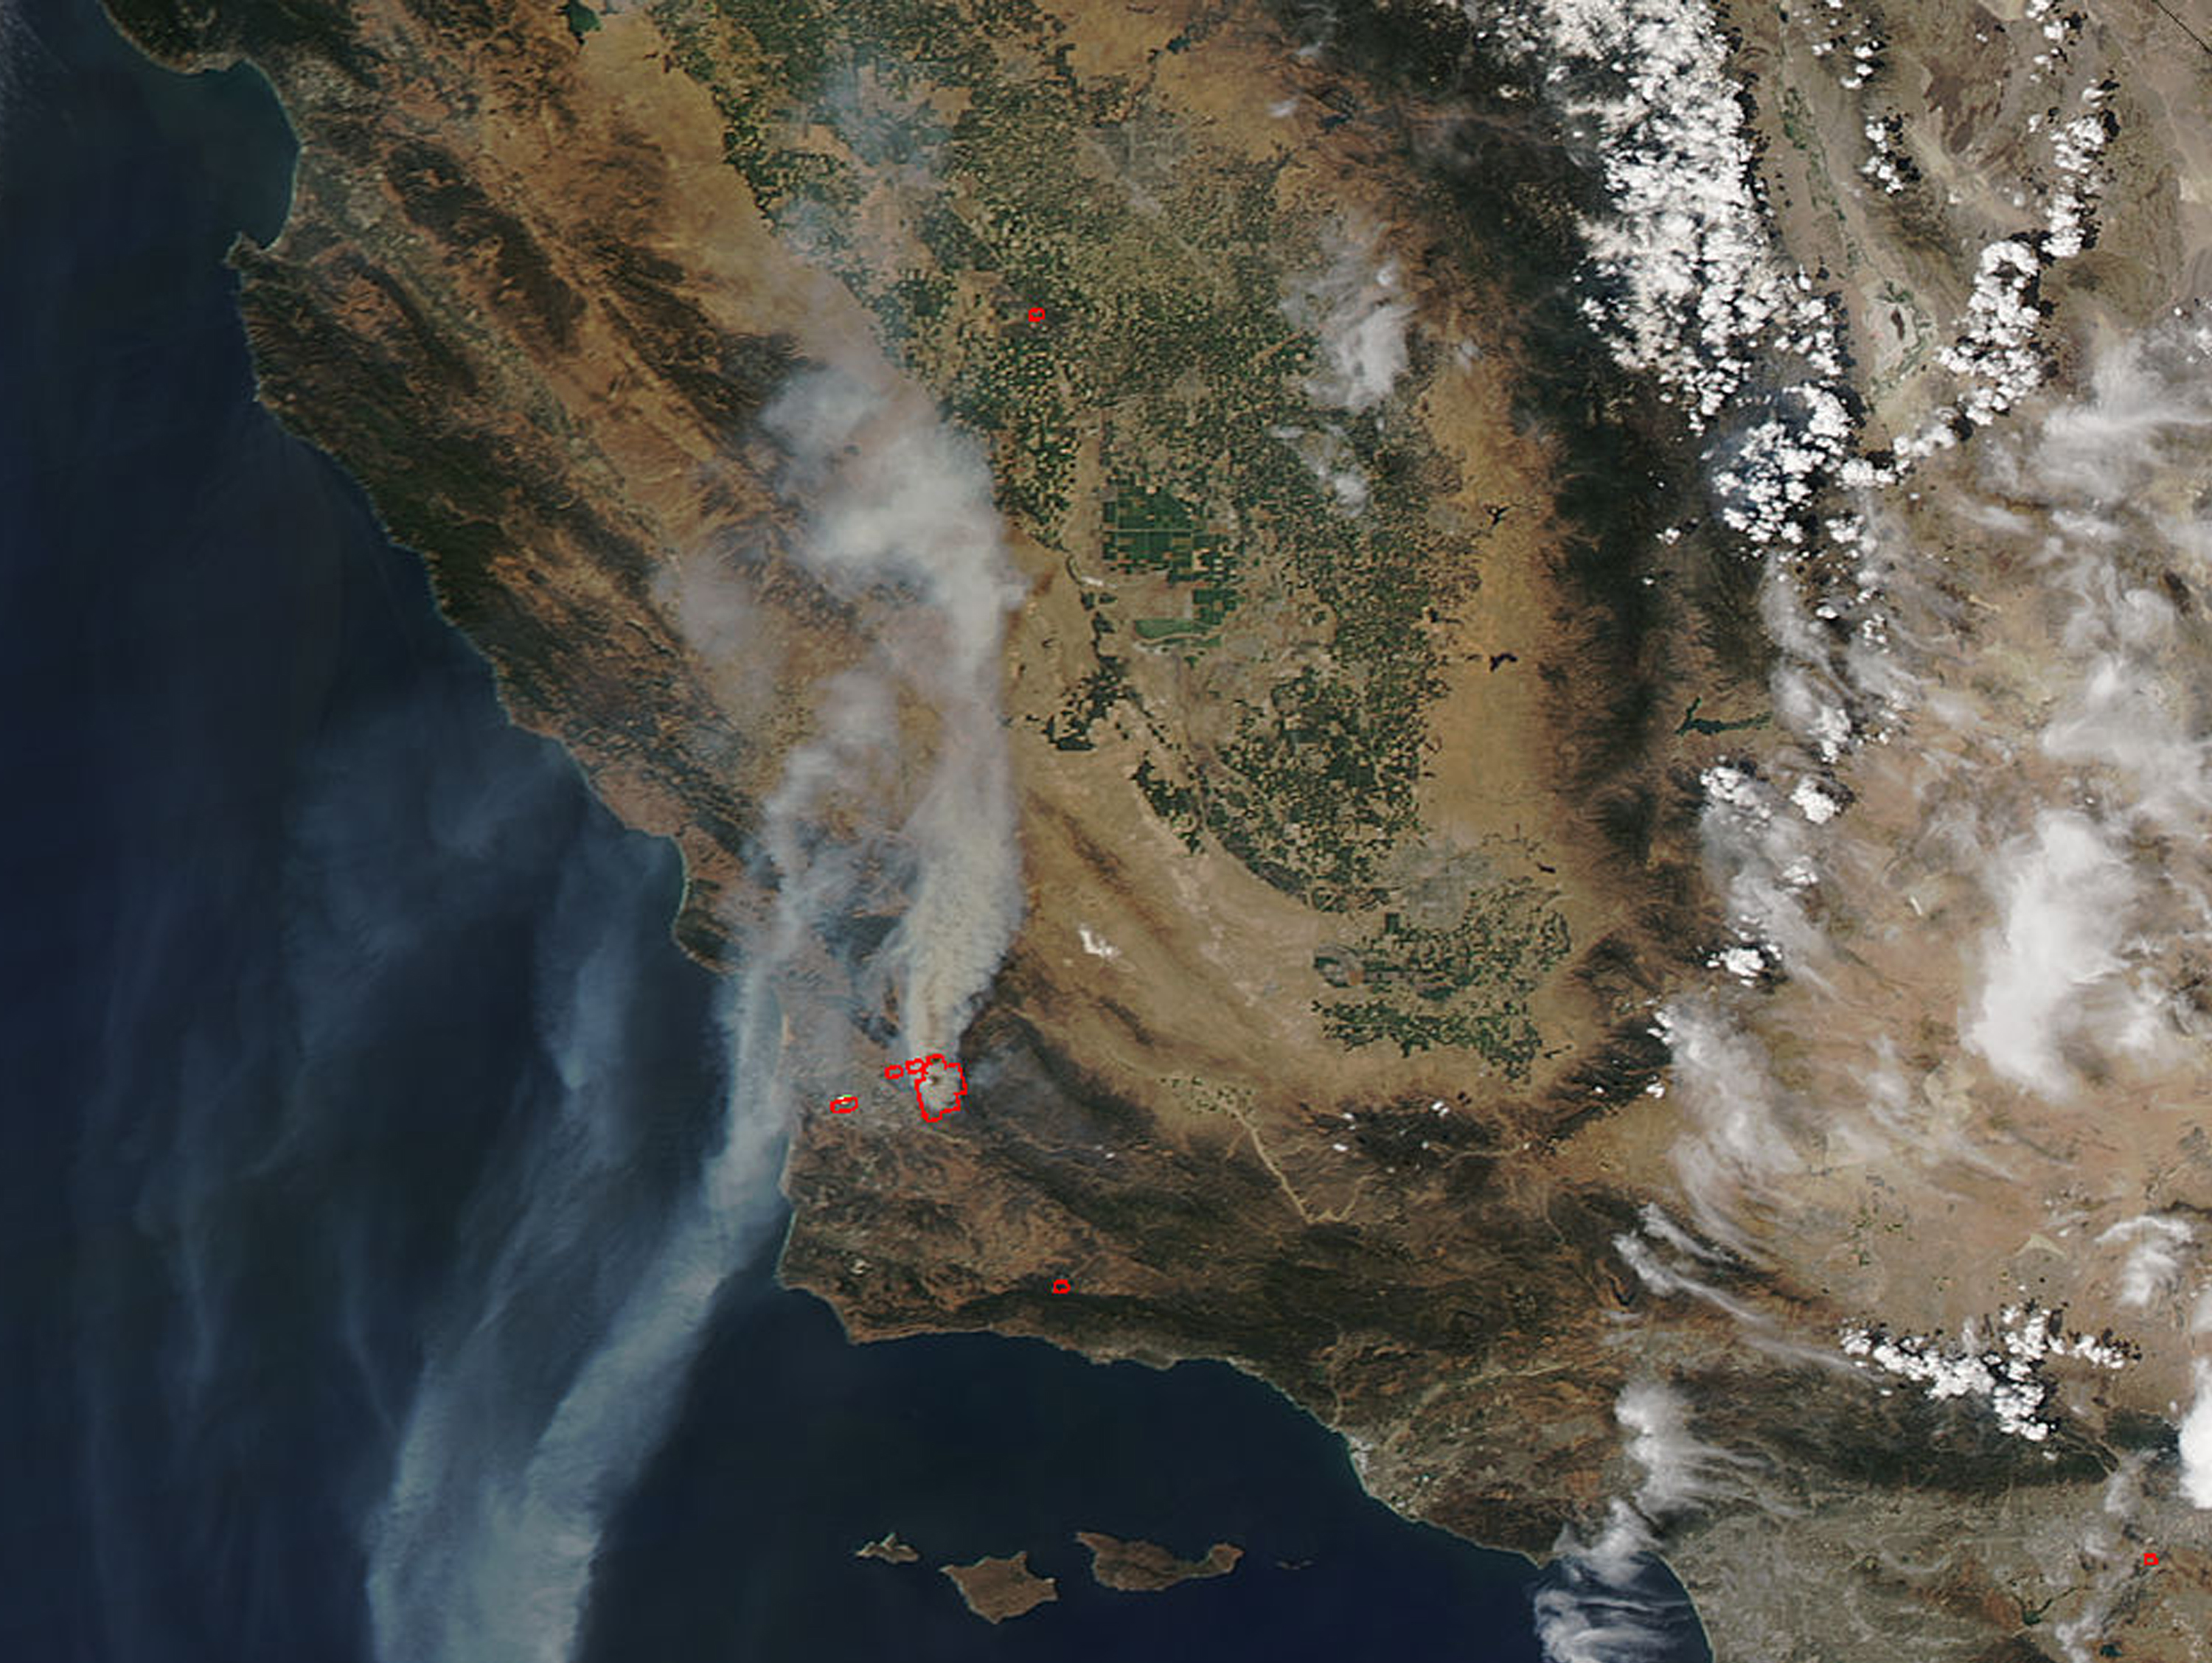 current california wildfire map with Nasa Sees Streaming Smoke From Southern Californias Alamo Fire on Rev as well Santa Rosa together with Province Wide Fire Ban Issued Due To Tinder Dry Conditions 1 likewise Dozens Of Fires Burn Through Montana And Neighboring States in addition Santa Rosa Fire Latest Tweets And Updates.